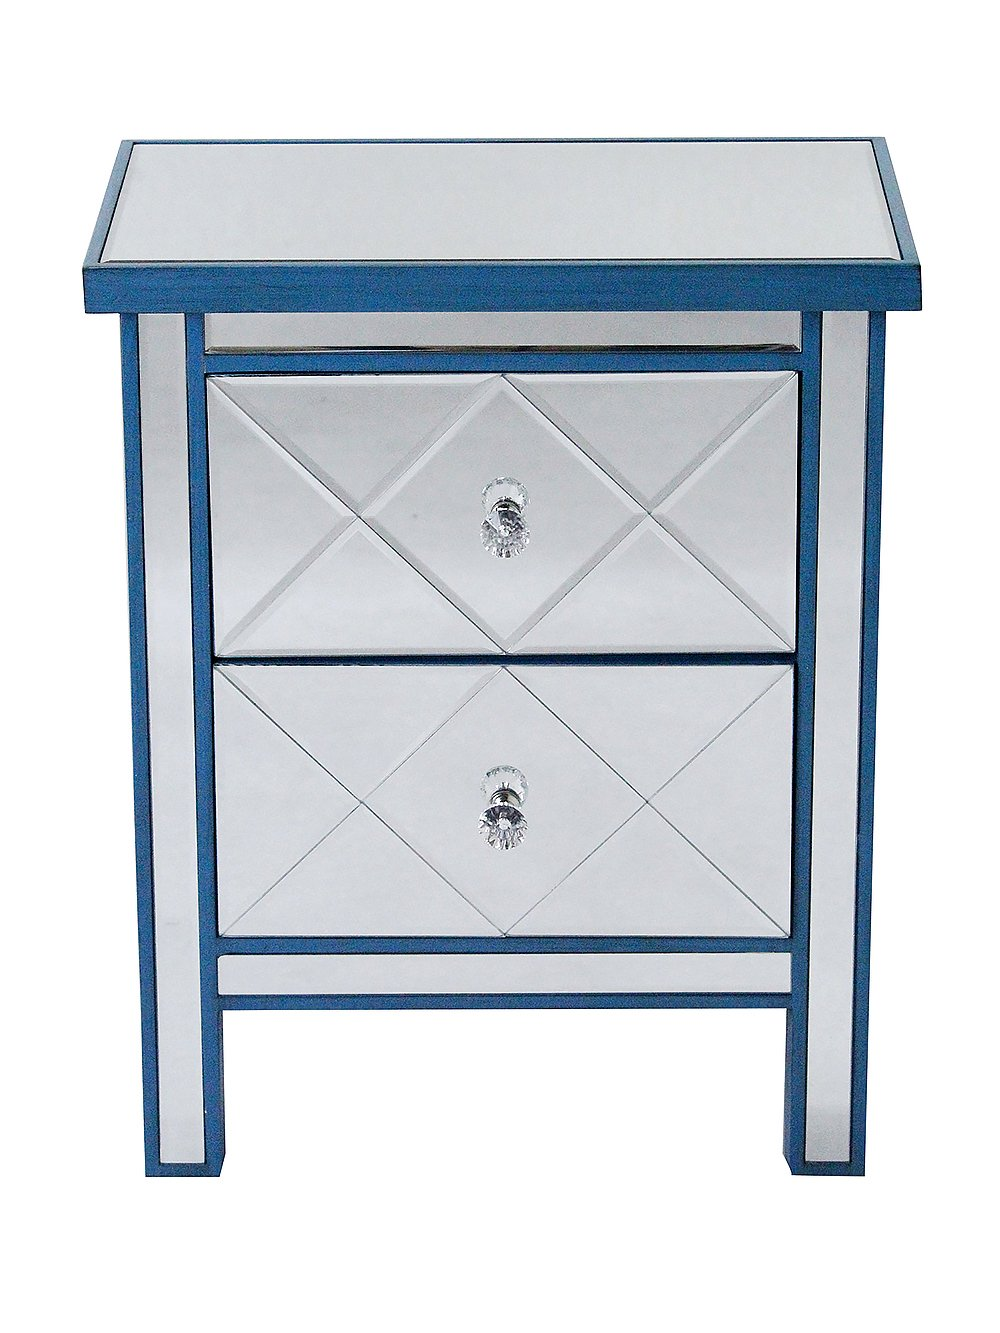 Heather Ann Creations Modern Beveled Mirrored Finished 2 Drawer Accent Chest Nightstand, 20'' x 13'' x 26'', Blue